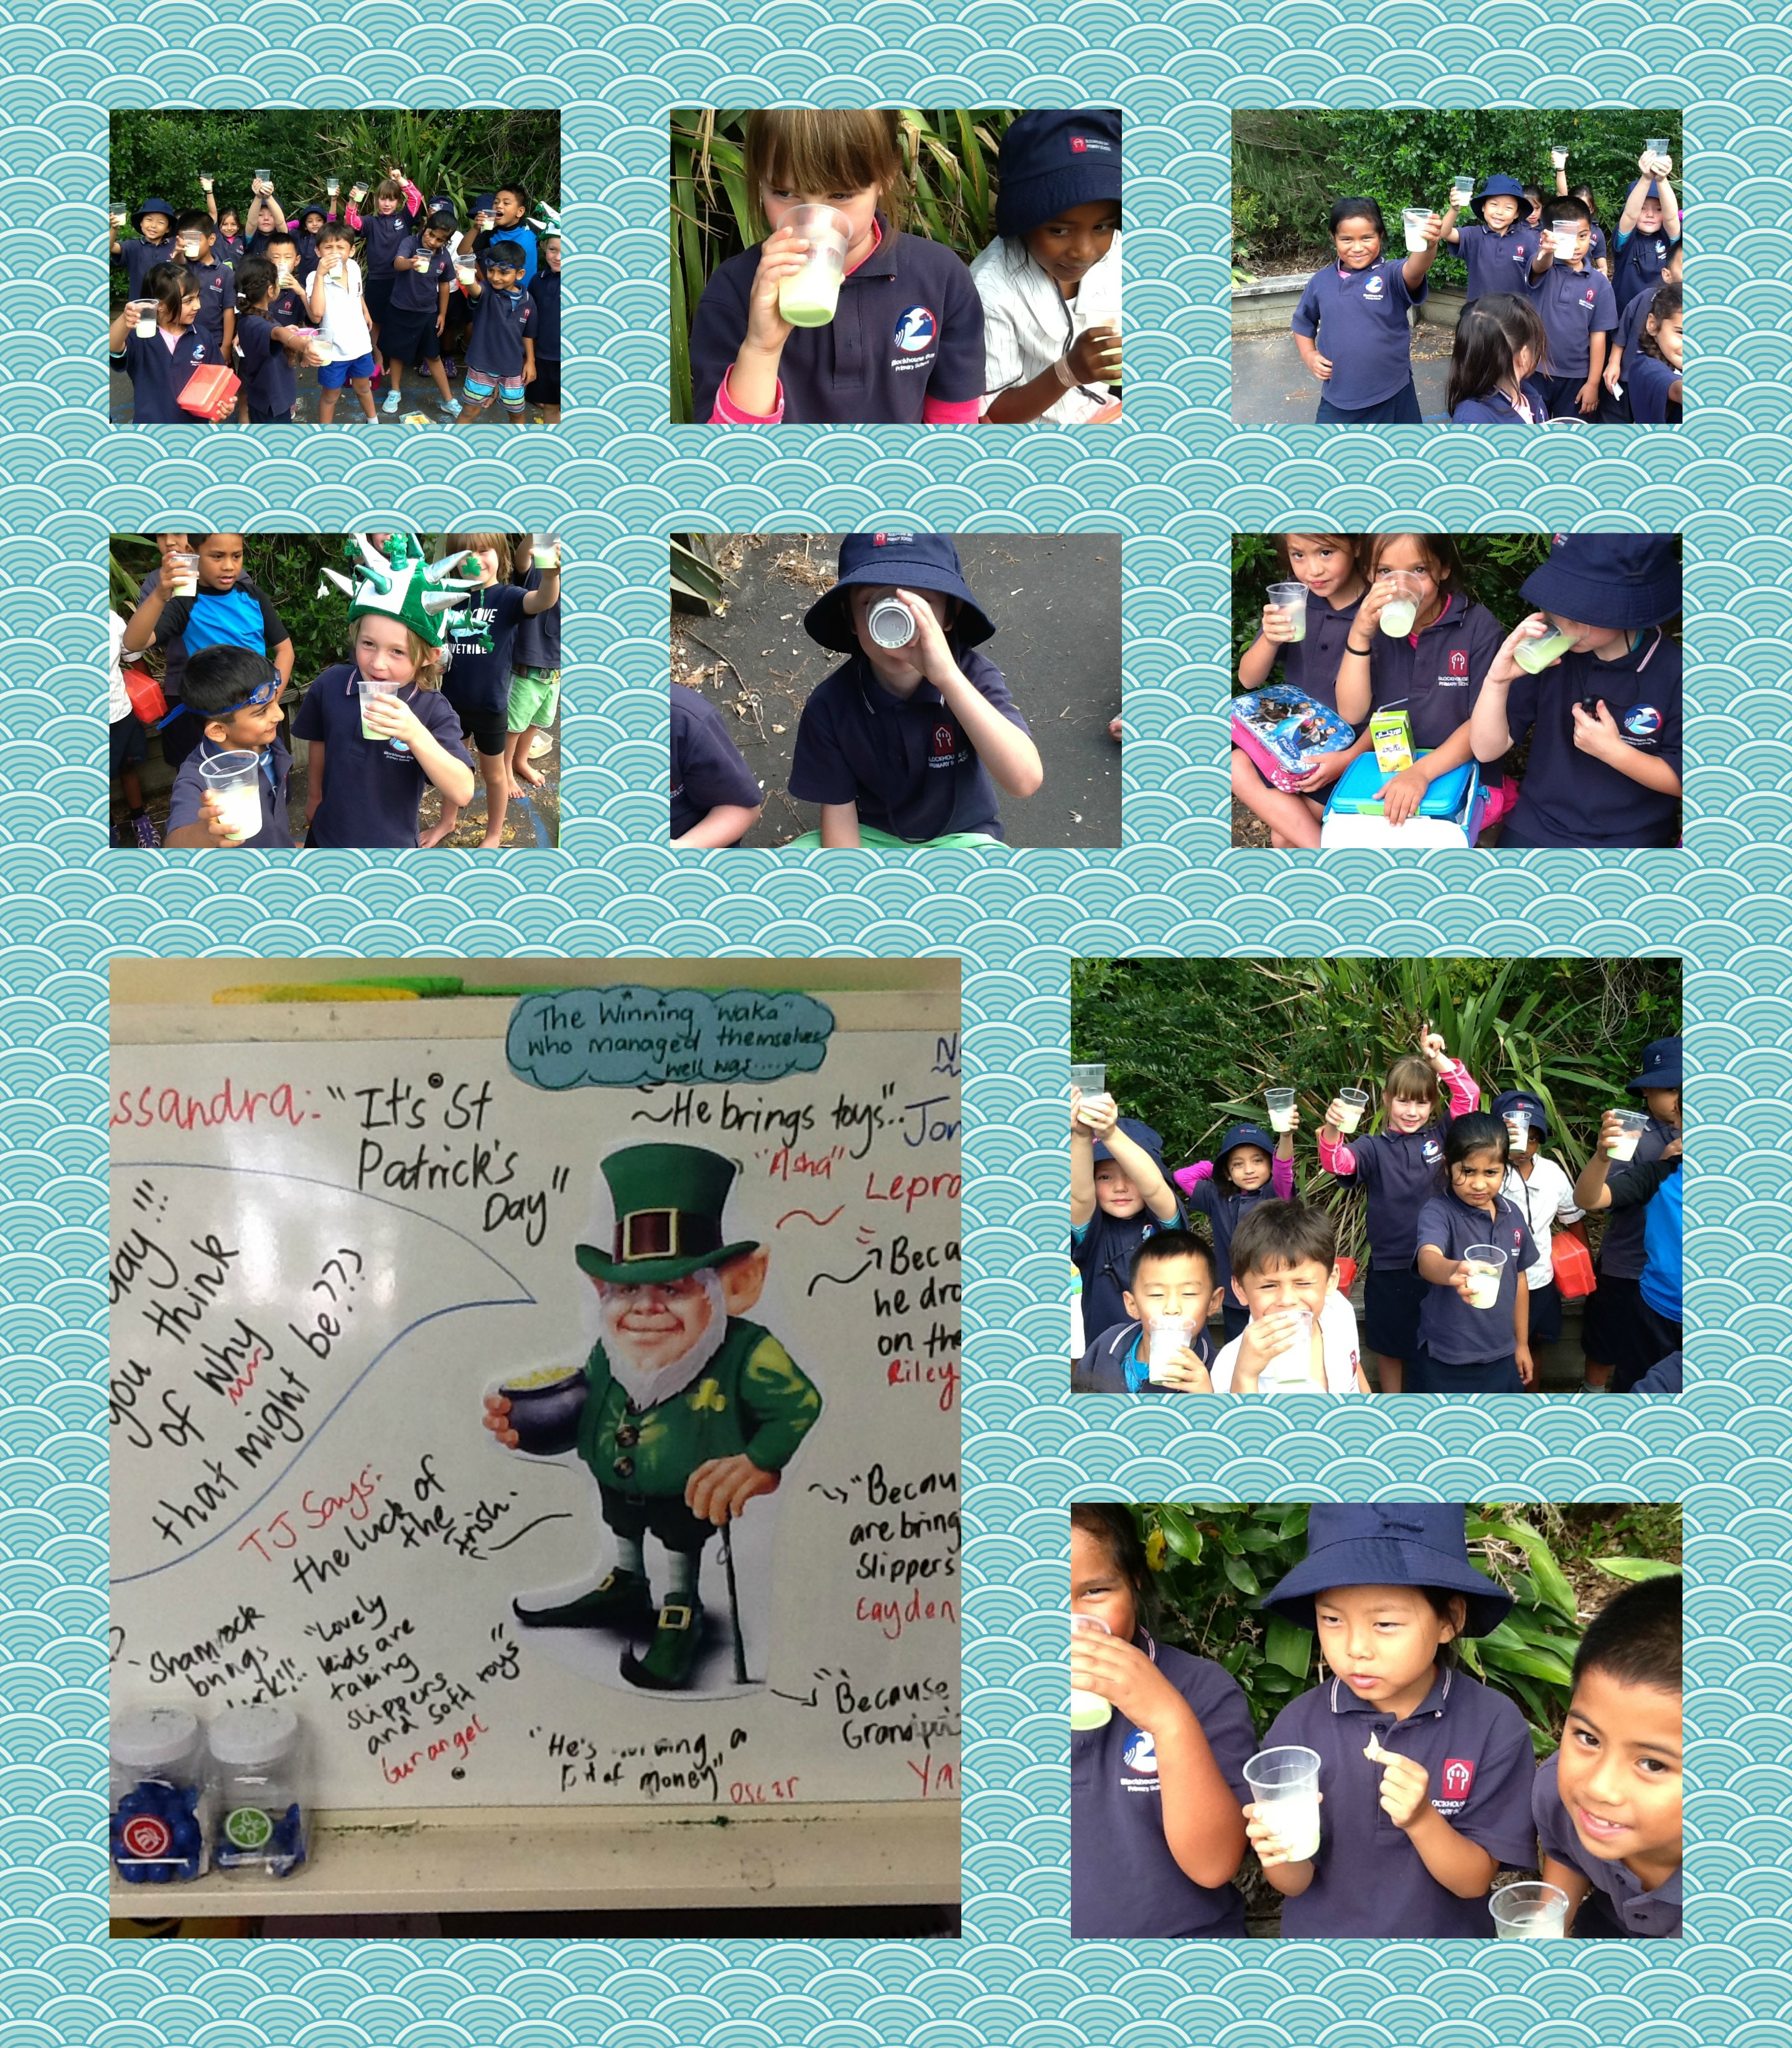 Blockhouse Bay Primary School - Luck of the Irish